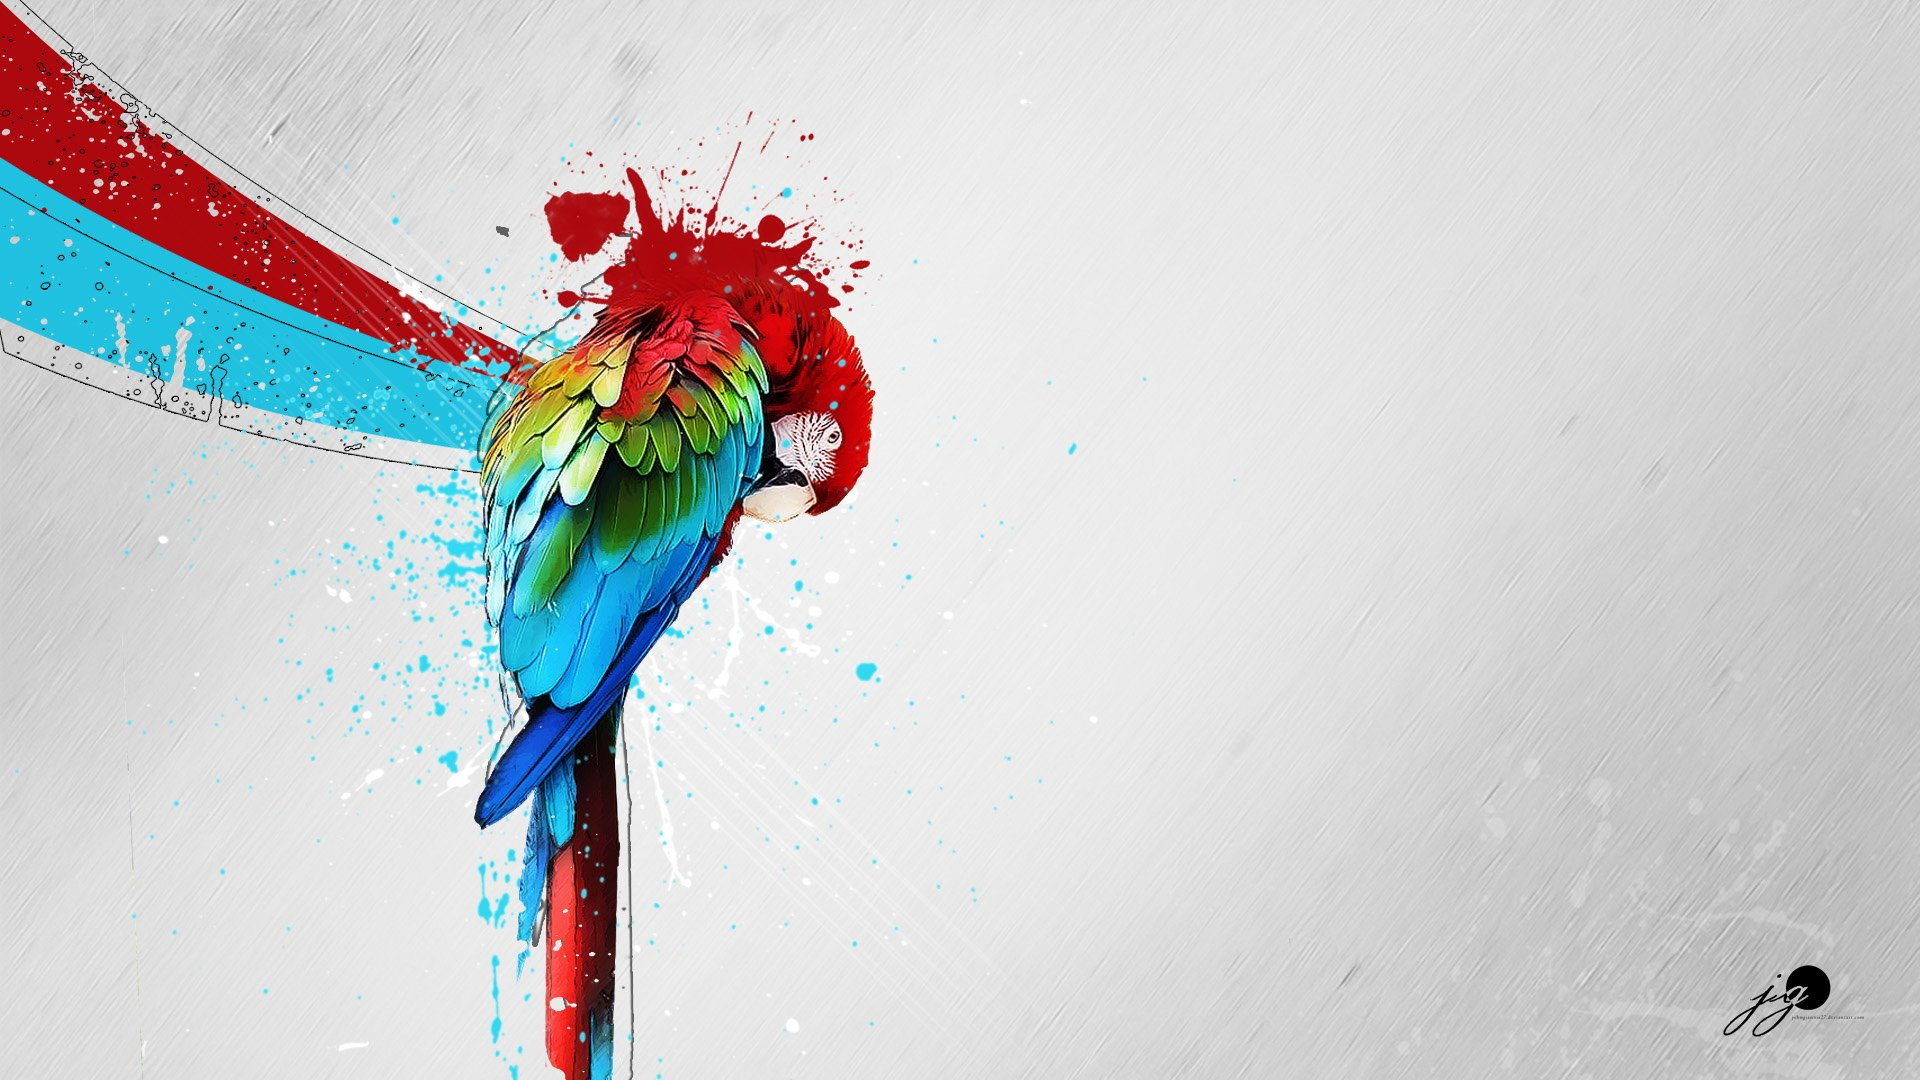 Abstract Colors Flashy Bird 4k: Macaw Parrot Bird Tropical Psychedelic Artwork Art